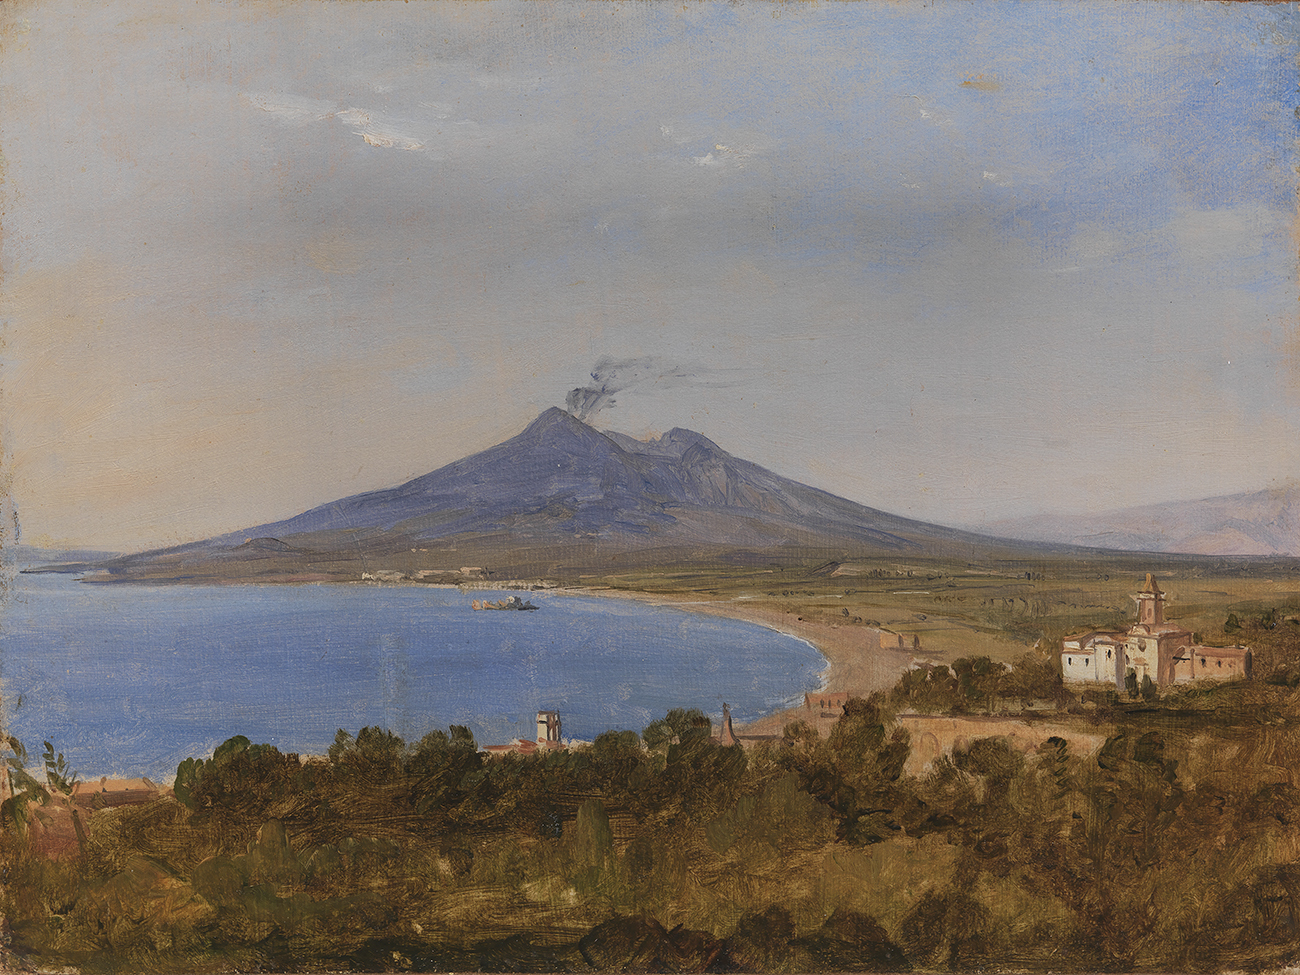 Franz Ludwig Catel, The Gulf of Naples with Vesuvius